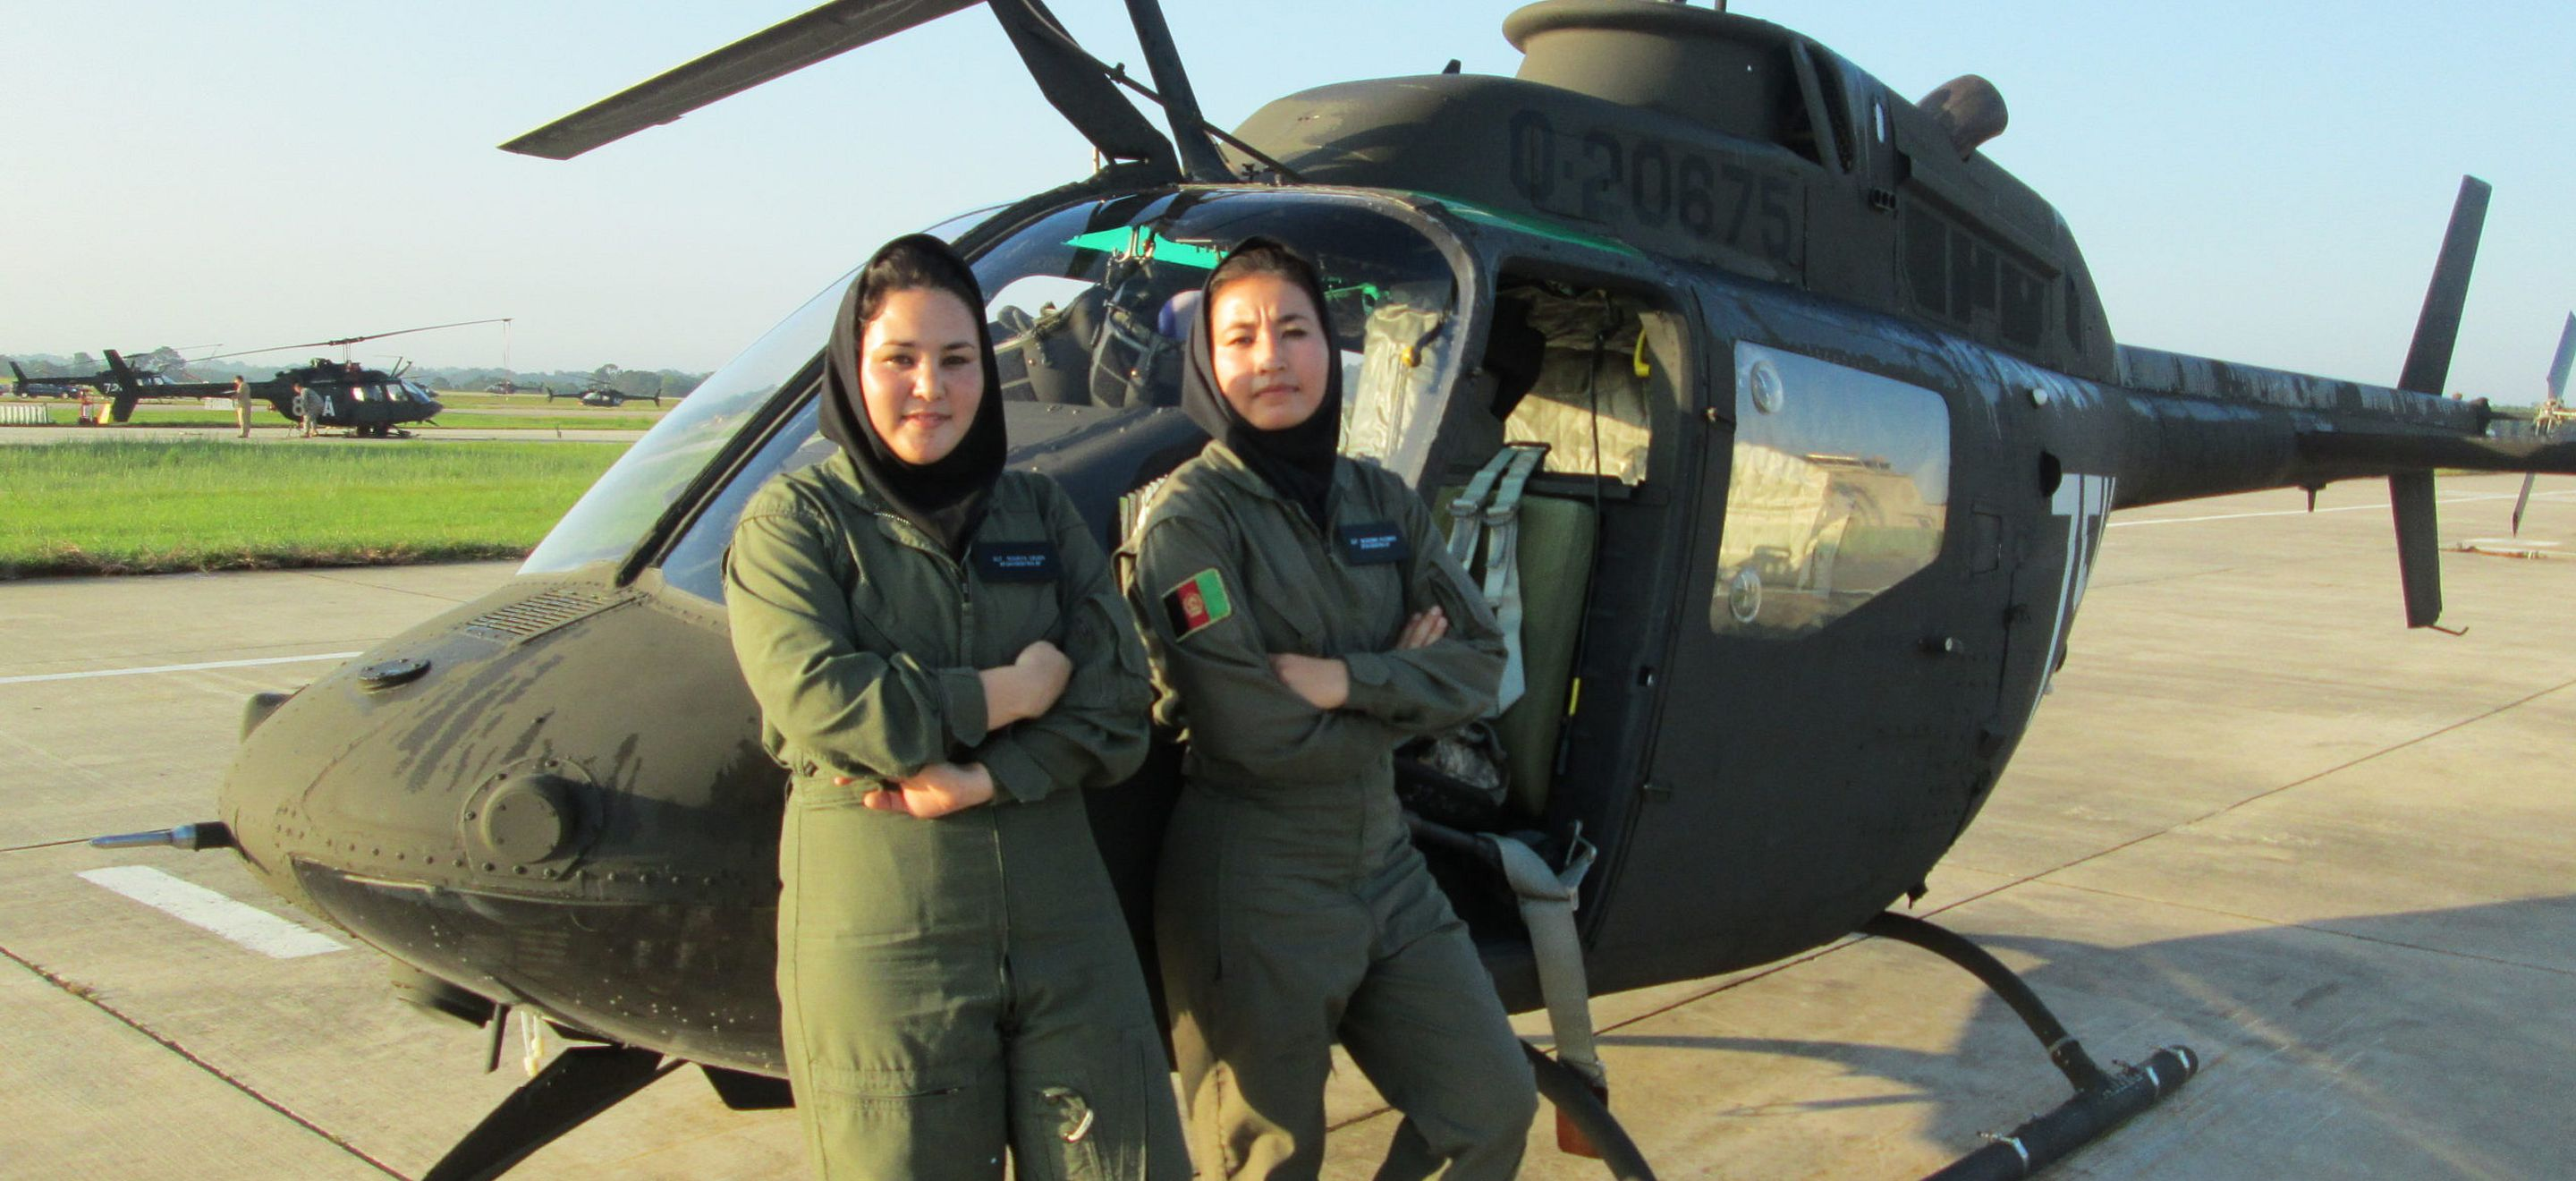 Two Afghan women pose, arms folded, in front of a military helicopter on a tarmac. They wear olive green pilot uniforms with black head scarfs.